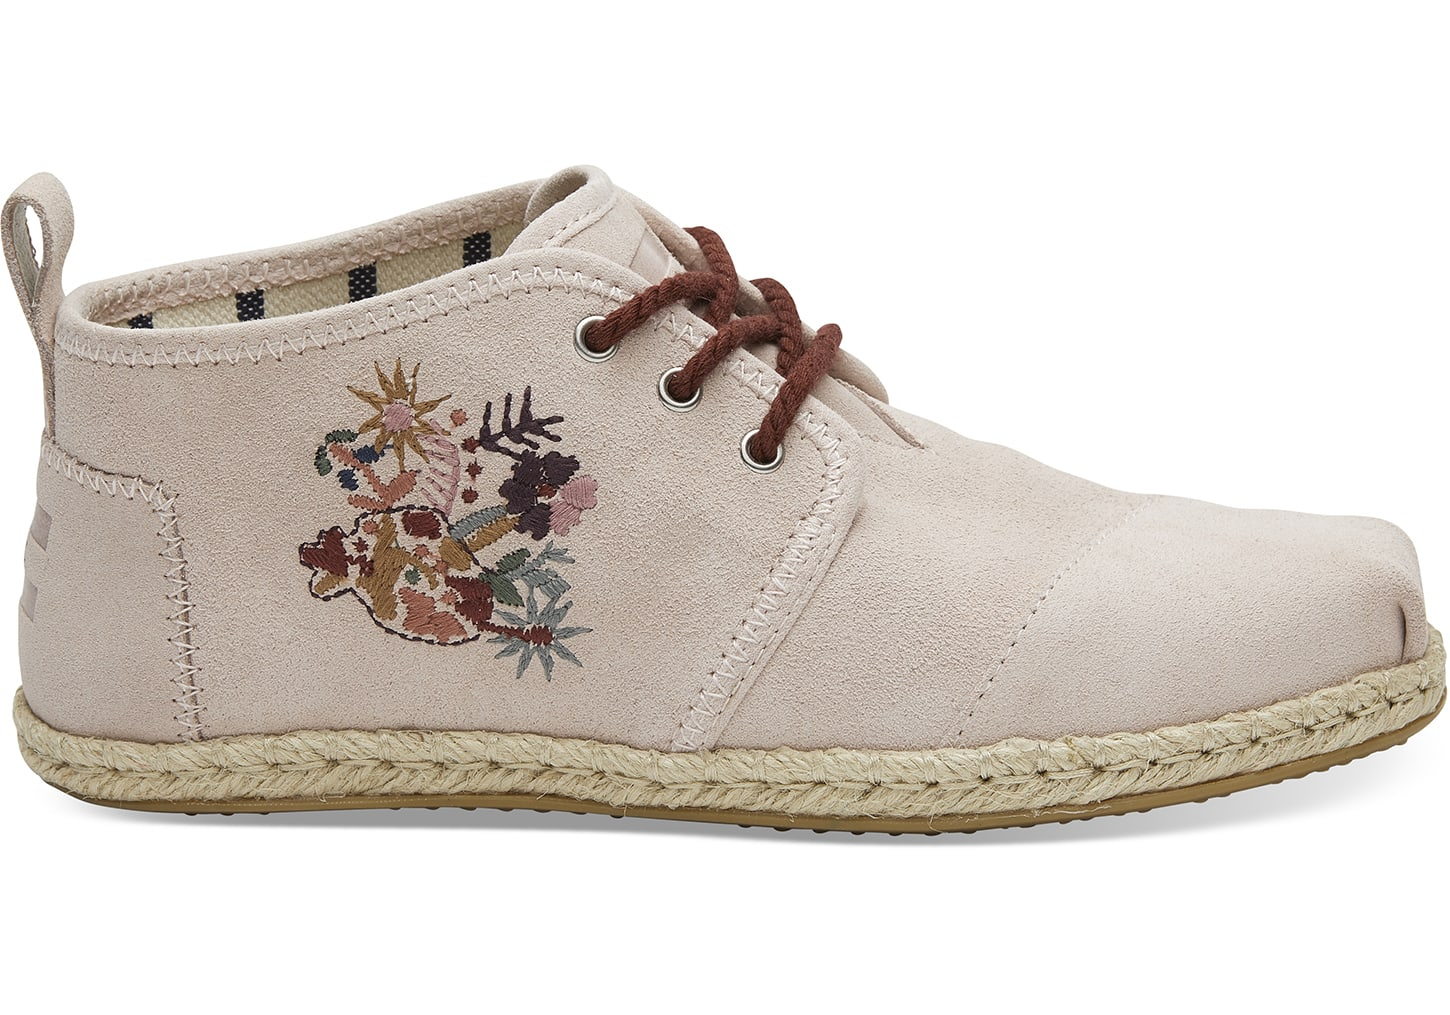 Toms pudrowe skórzane trampki do kostek Boty Floral Embroidery Leather Rope Sole